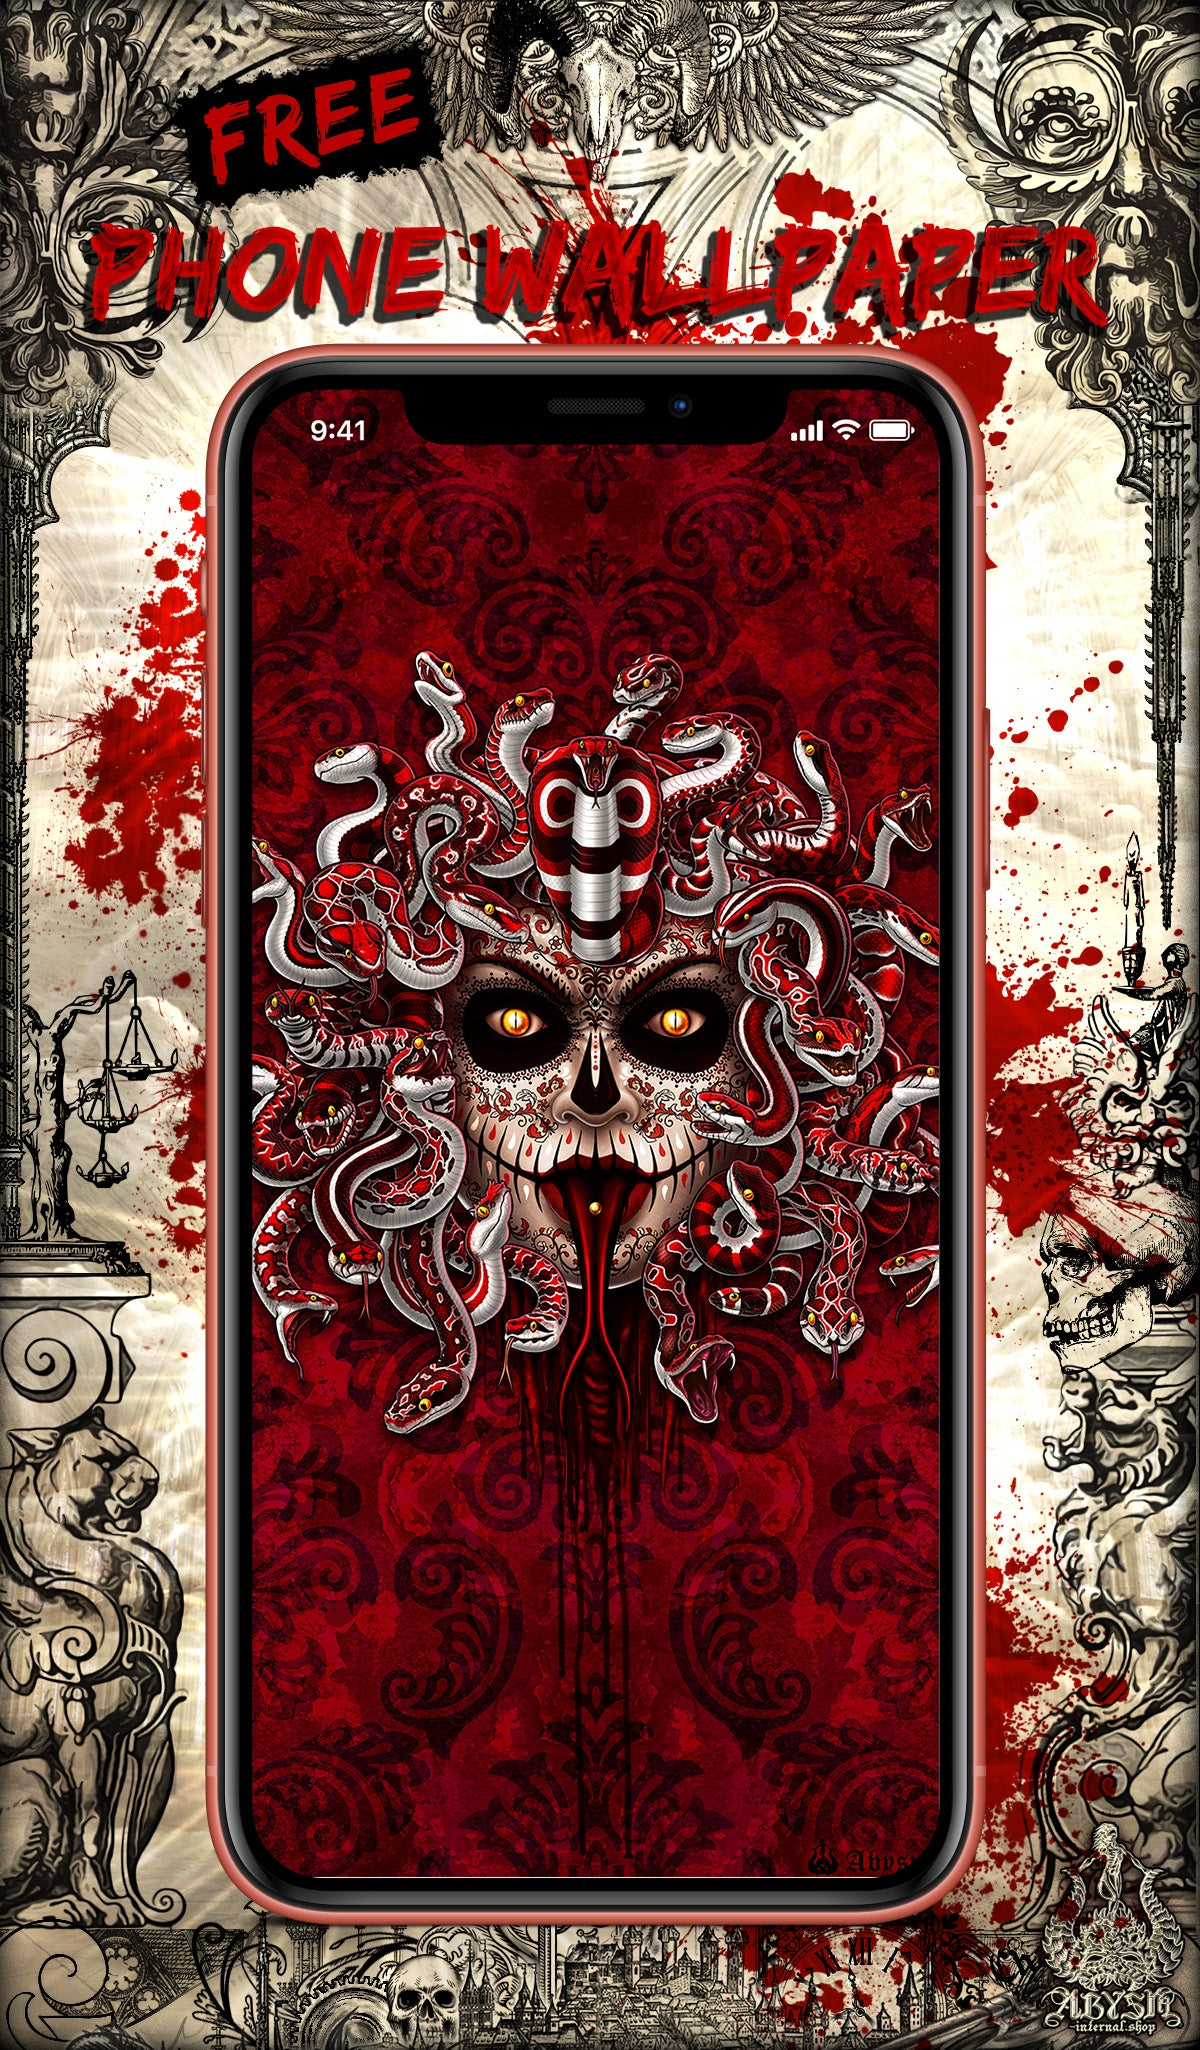 Free Wallpaper for Phone, depicting a Catrina Medusa with a Red and White Snakes, Mexican style Art